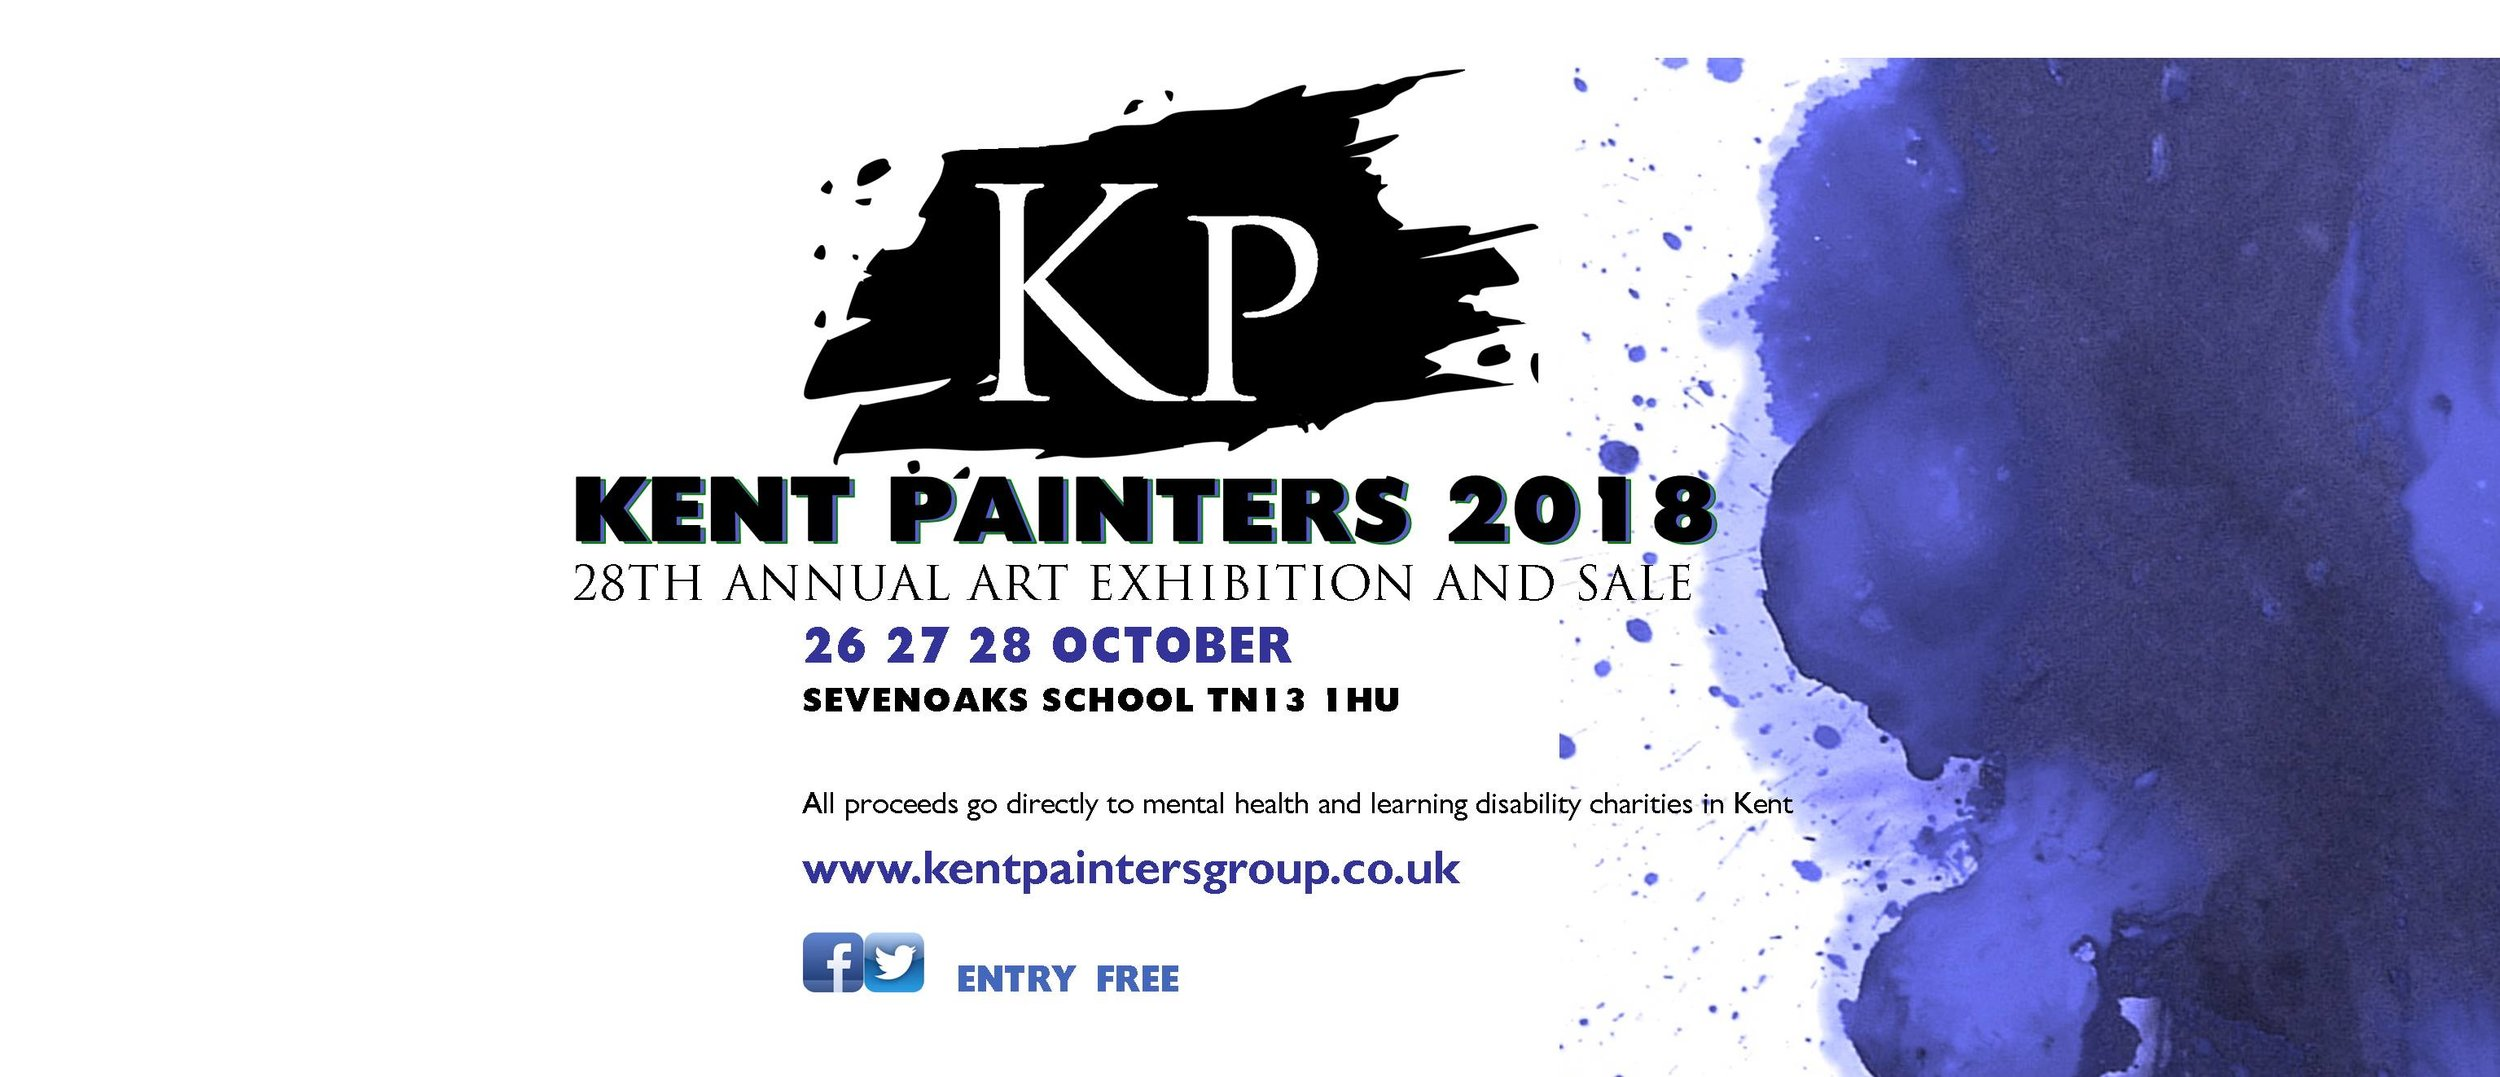 Kent Painters 2018 - I look forward to exhibiting with The Kent Painters in October 2018!